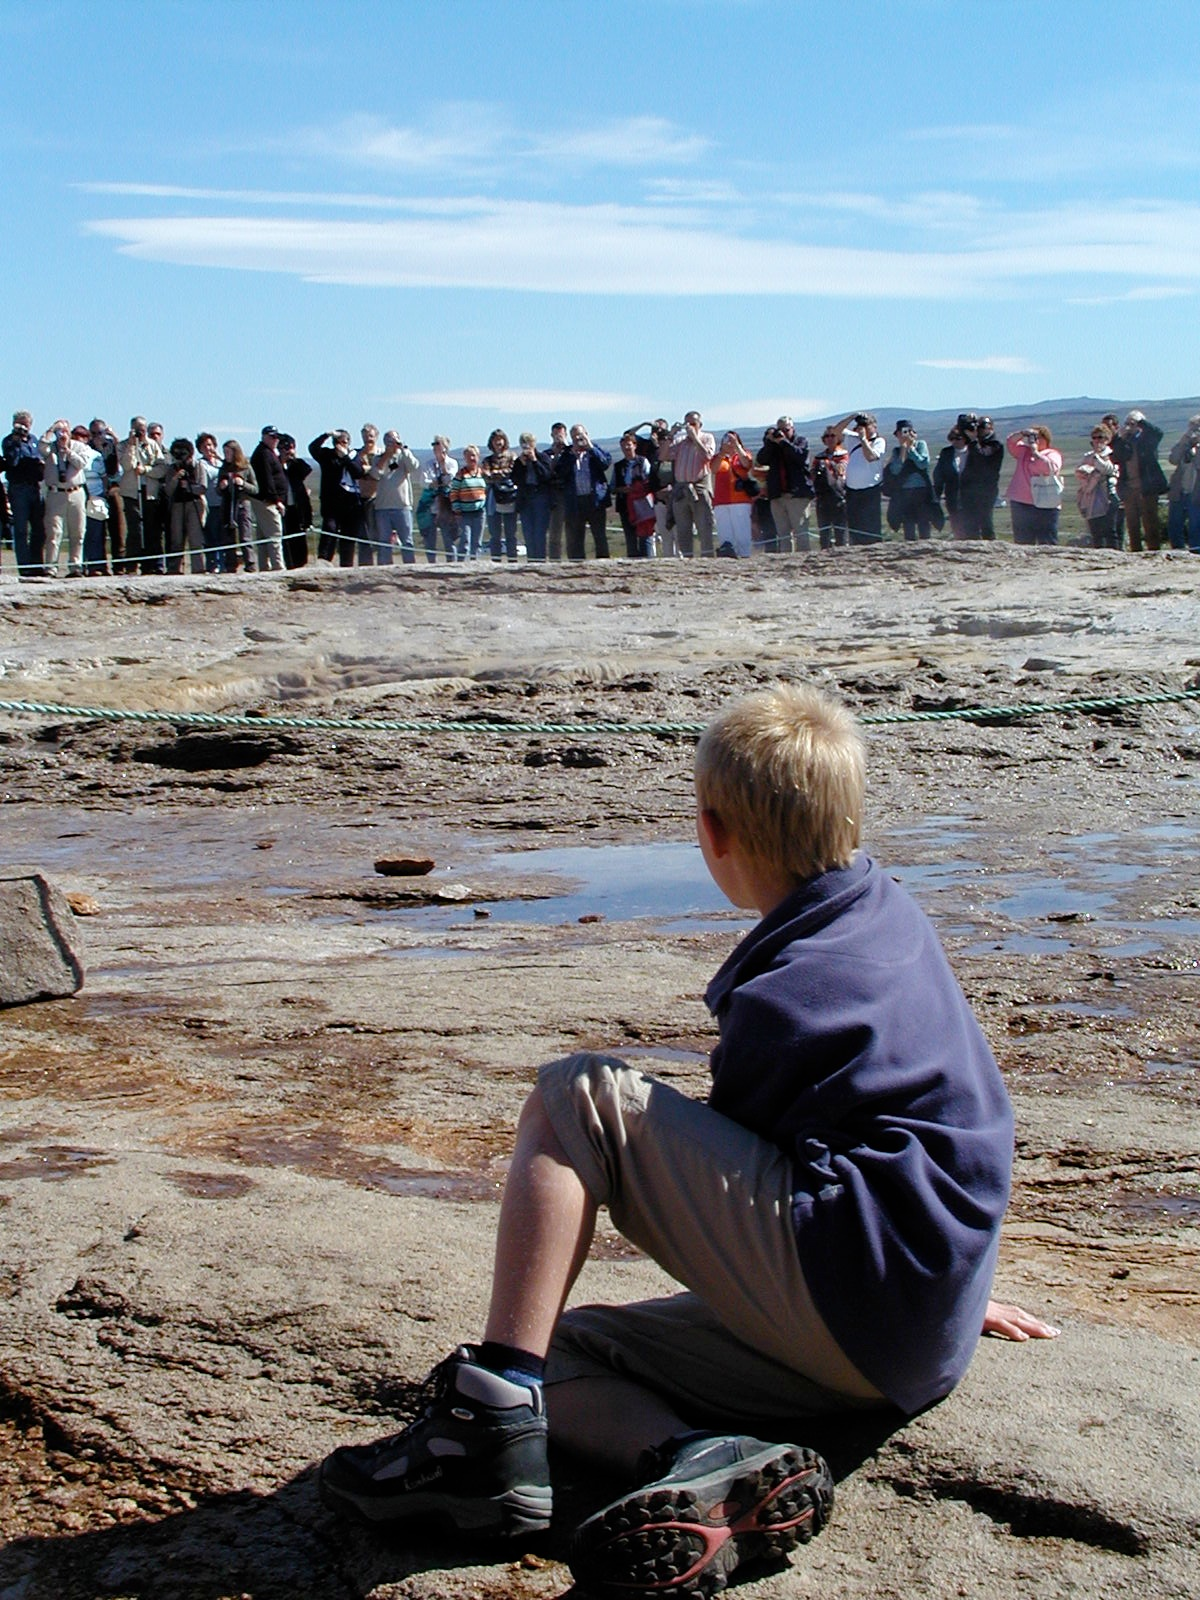 waiting for the geysir to blow author lucke charl charlie